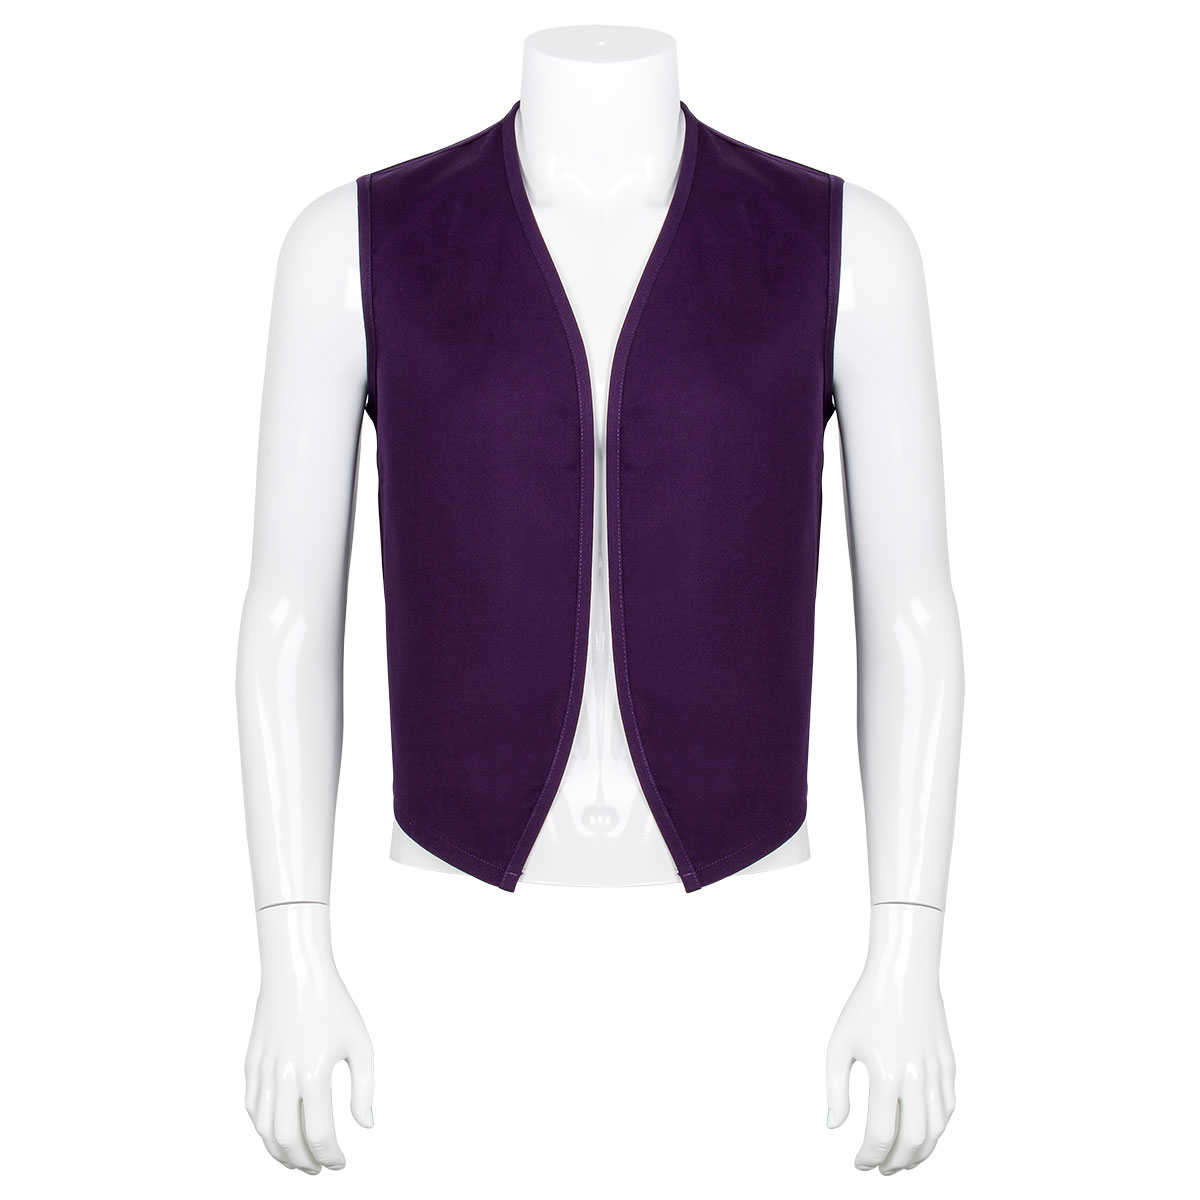 Disney Anime Aladdin Purple Vest Outfit Men Cosplay Costume Adult One Thousand and One Nights stories